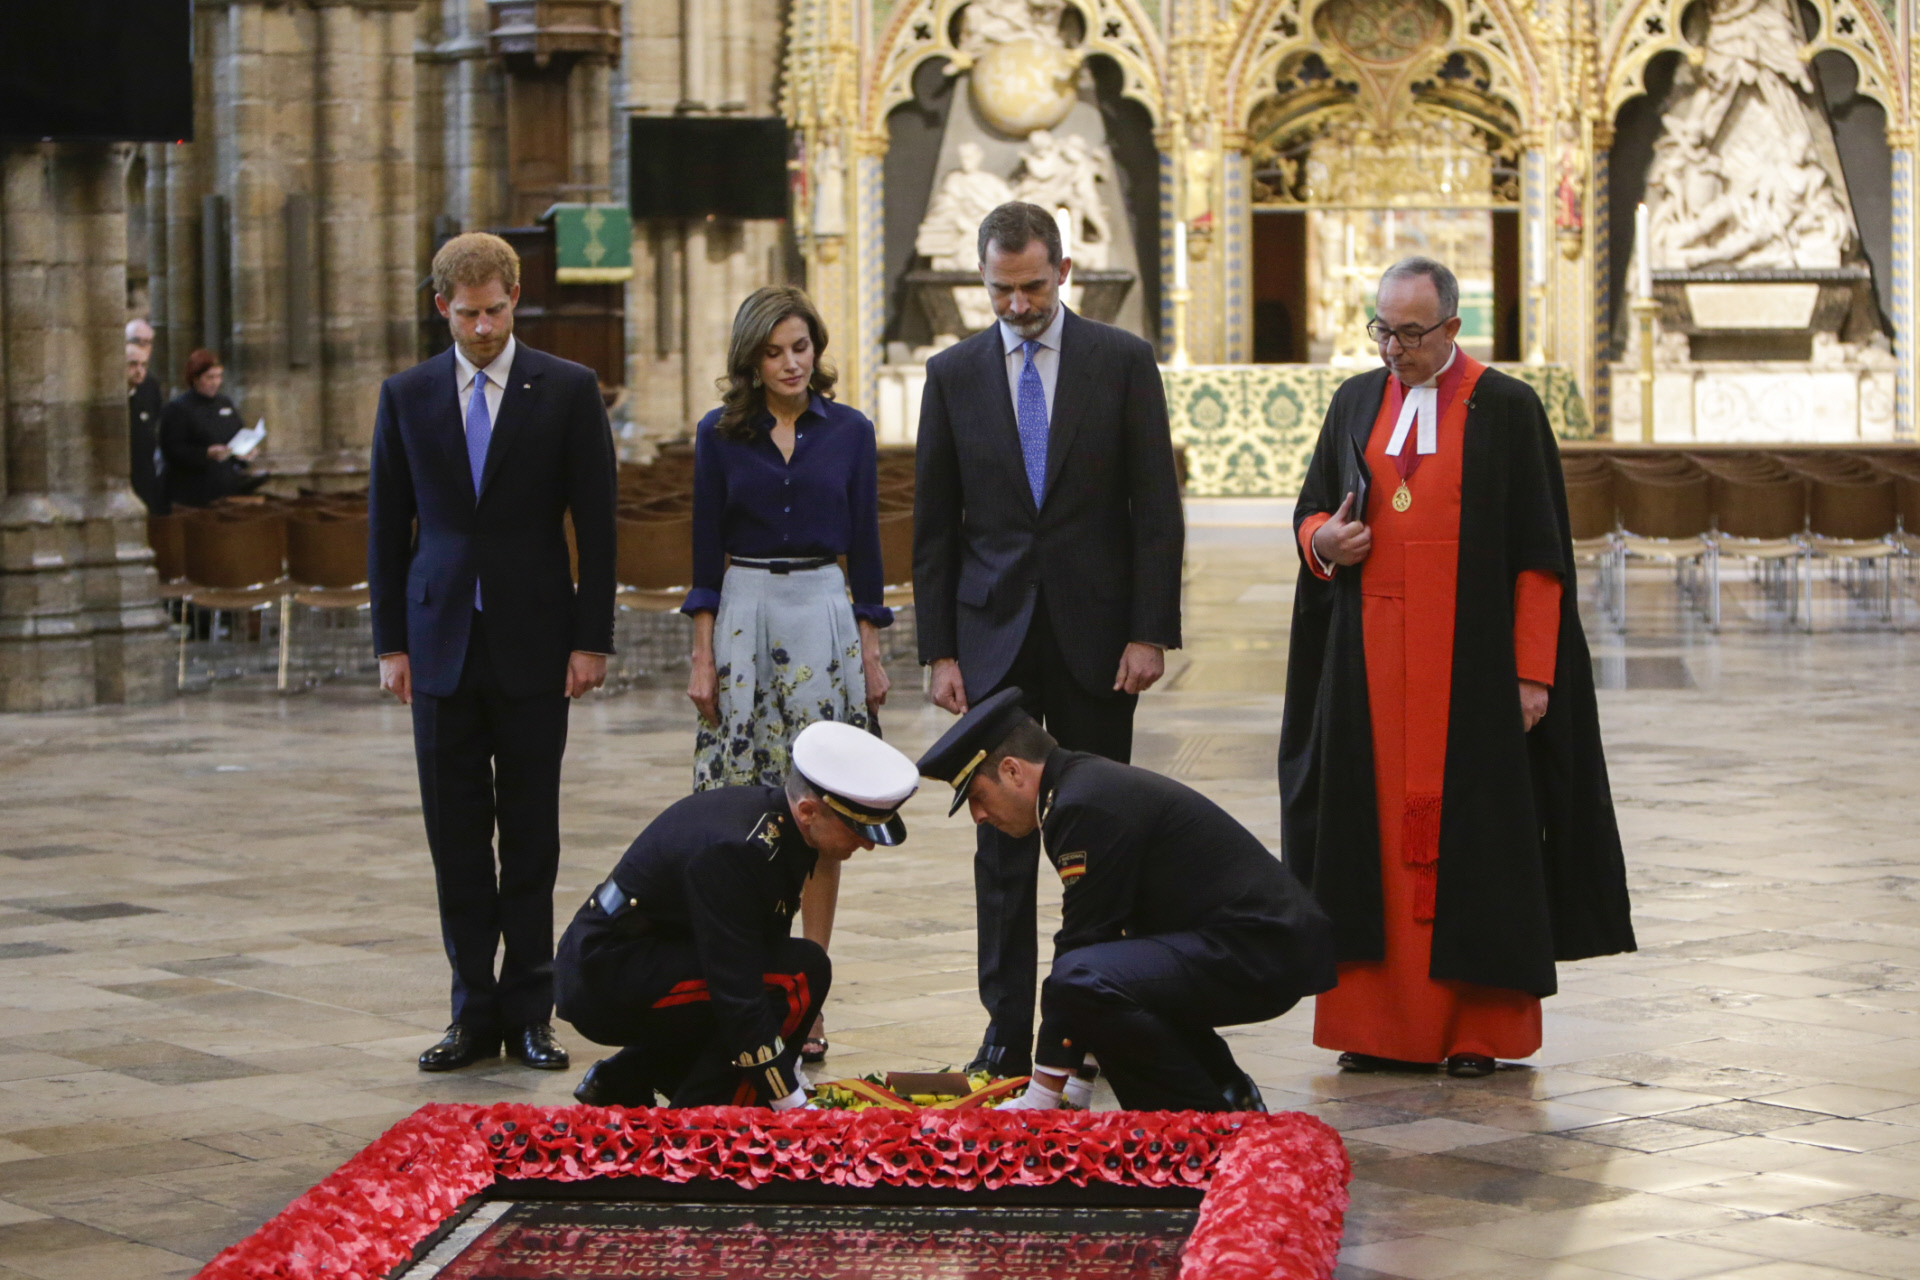 Spanish King Felipe VI and Queen Letizia visit to the Field of Remembrance at Westminster Abbey on occasion for their official visit to United Kingdom in London on Thursday on 13 July 2017. On the second day of their 3 day tour of United Kingdom